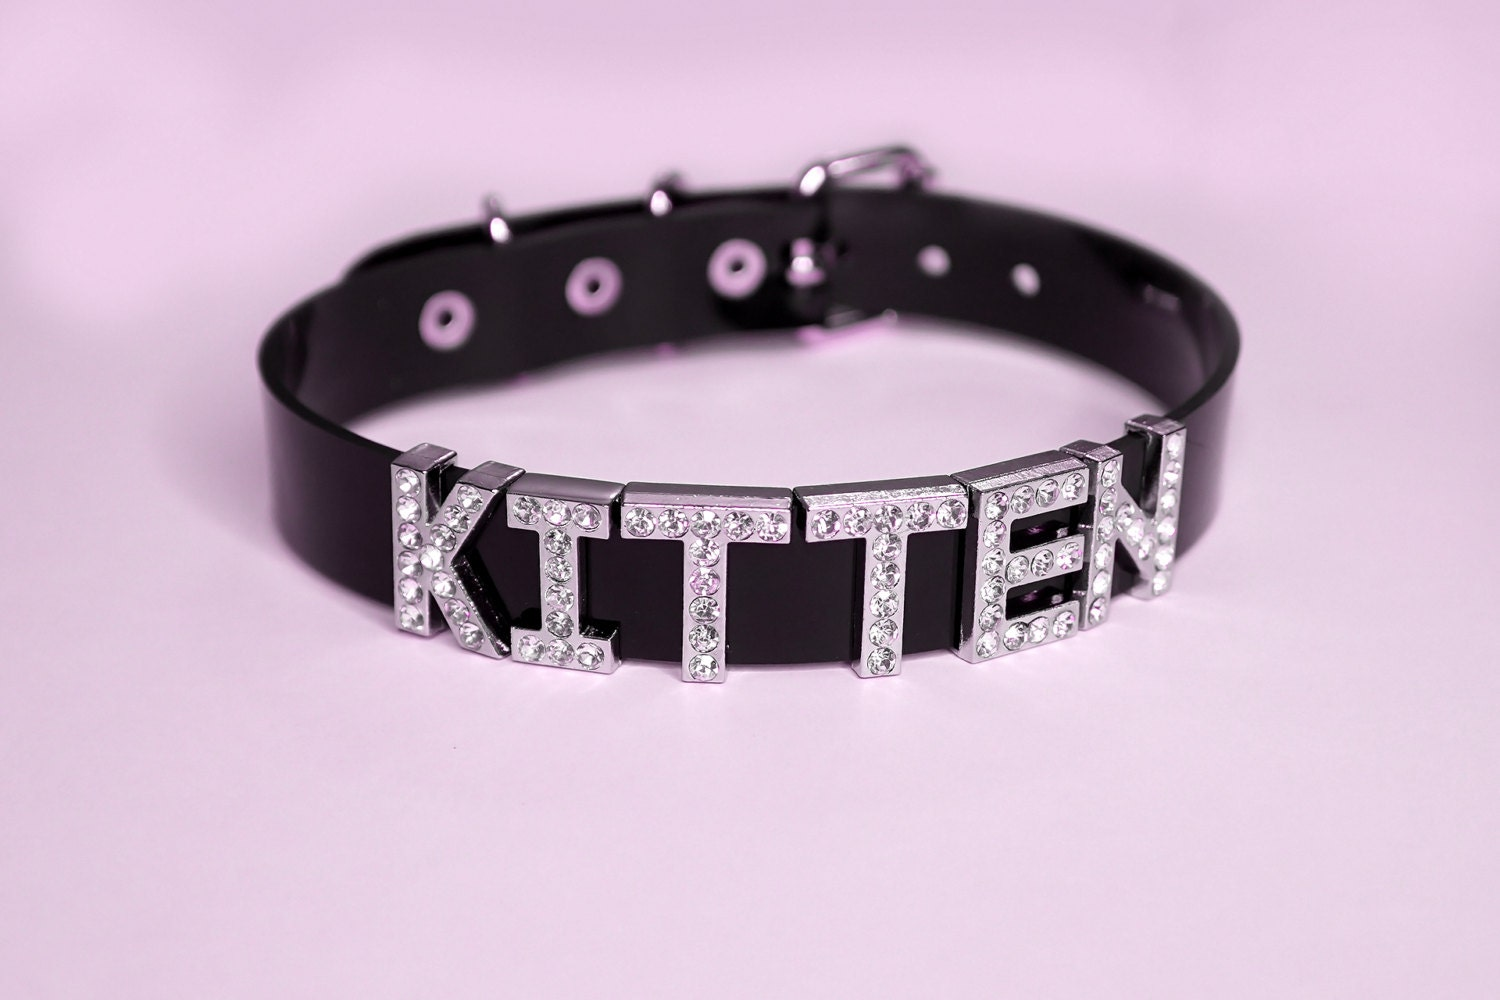 Harley Dog Collar